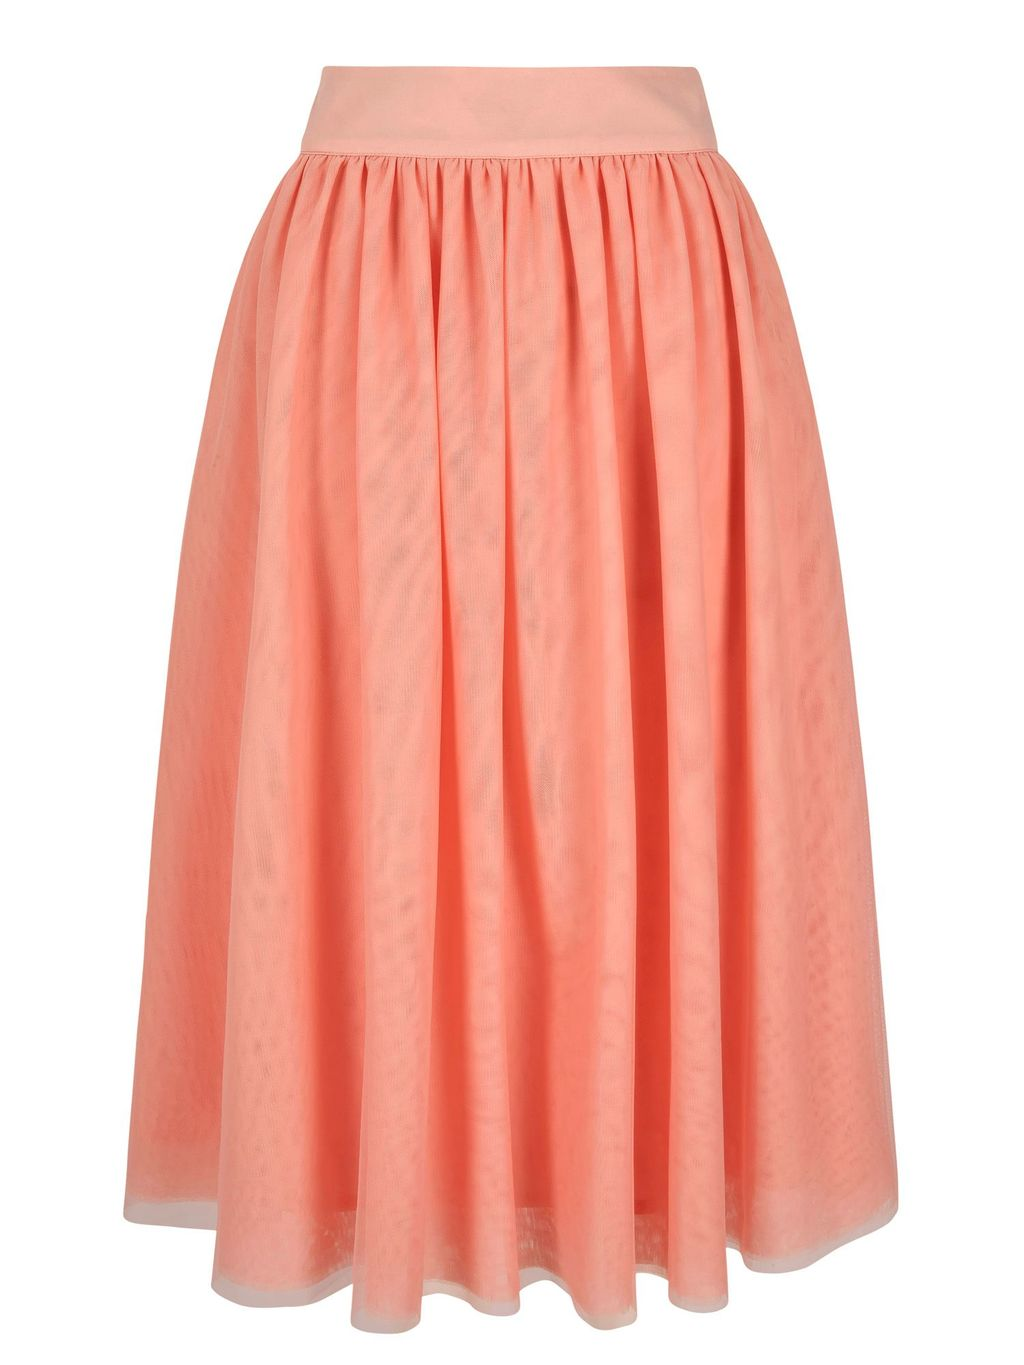 Tulle Midi Skirt, Pink - length: below the knee; pattern: plain; fit: loose/voluminous; style: pleated; waist: high rise; predominant colour: coral; fibres: polyester/polyamide - stretch; occasions: occasion, creative work; hip detail: adds bulk at the hips; waist detail: feature waist detail; texture group: sheer fabrics/chiffon/organza etc.; pattern type: fabric; season: s/s 2016; wardrobe: highlight